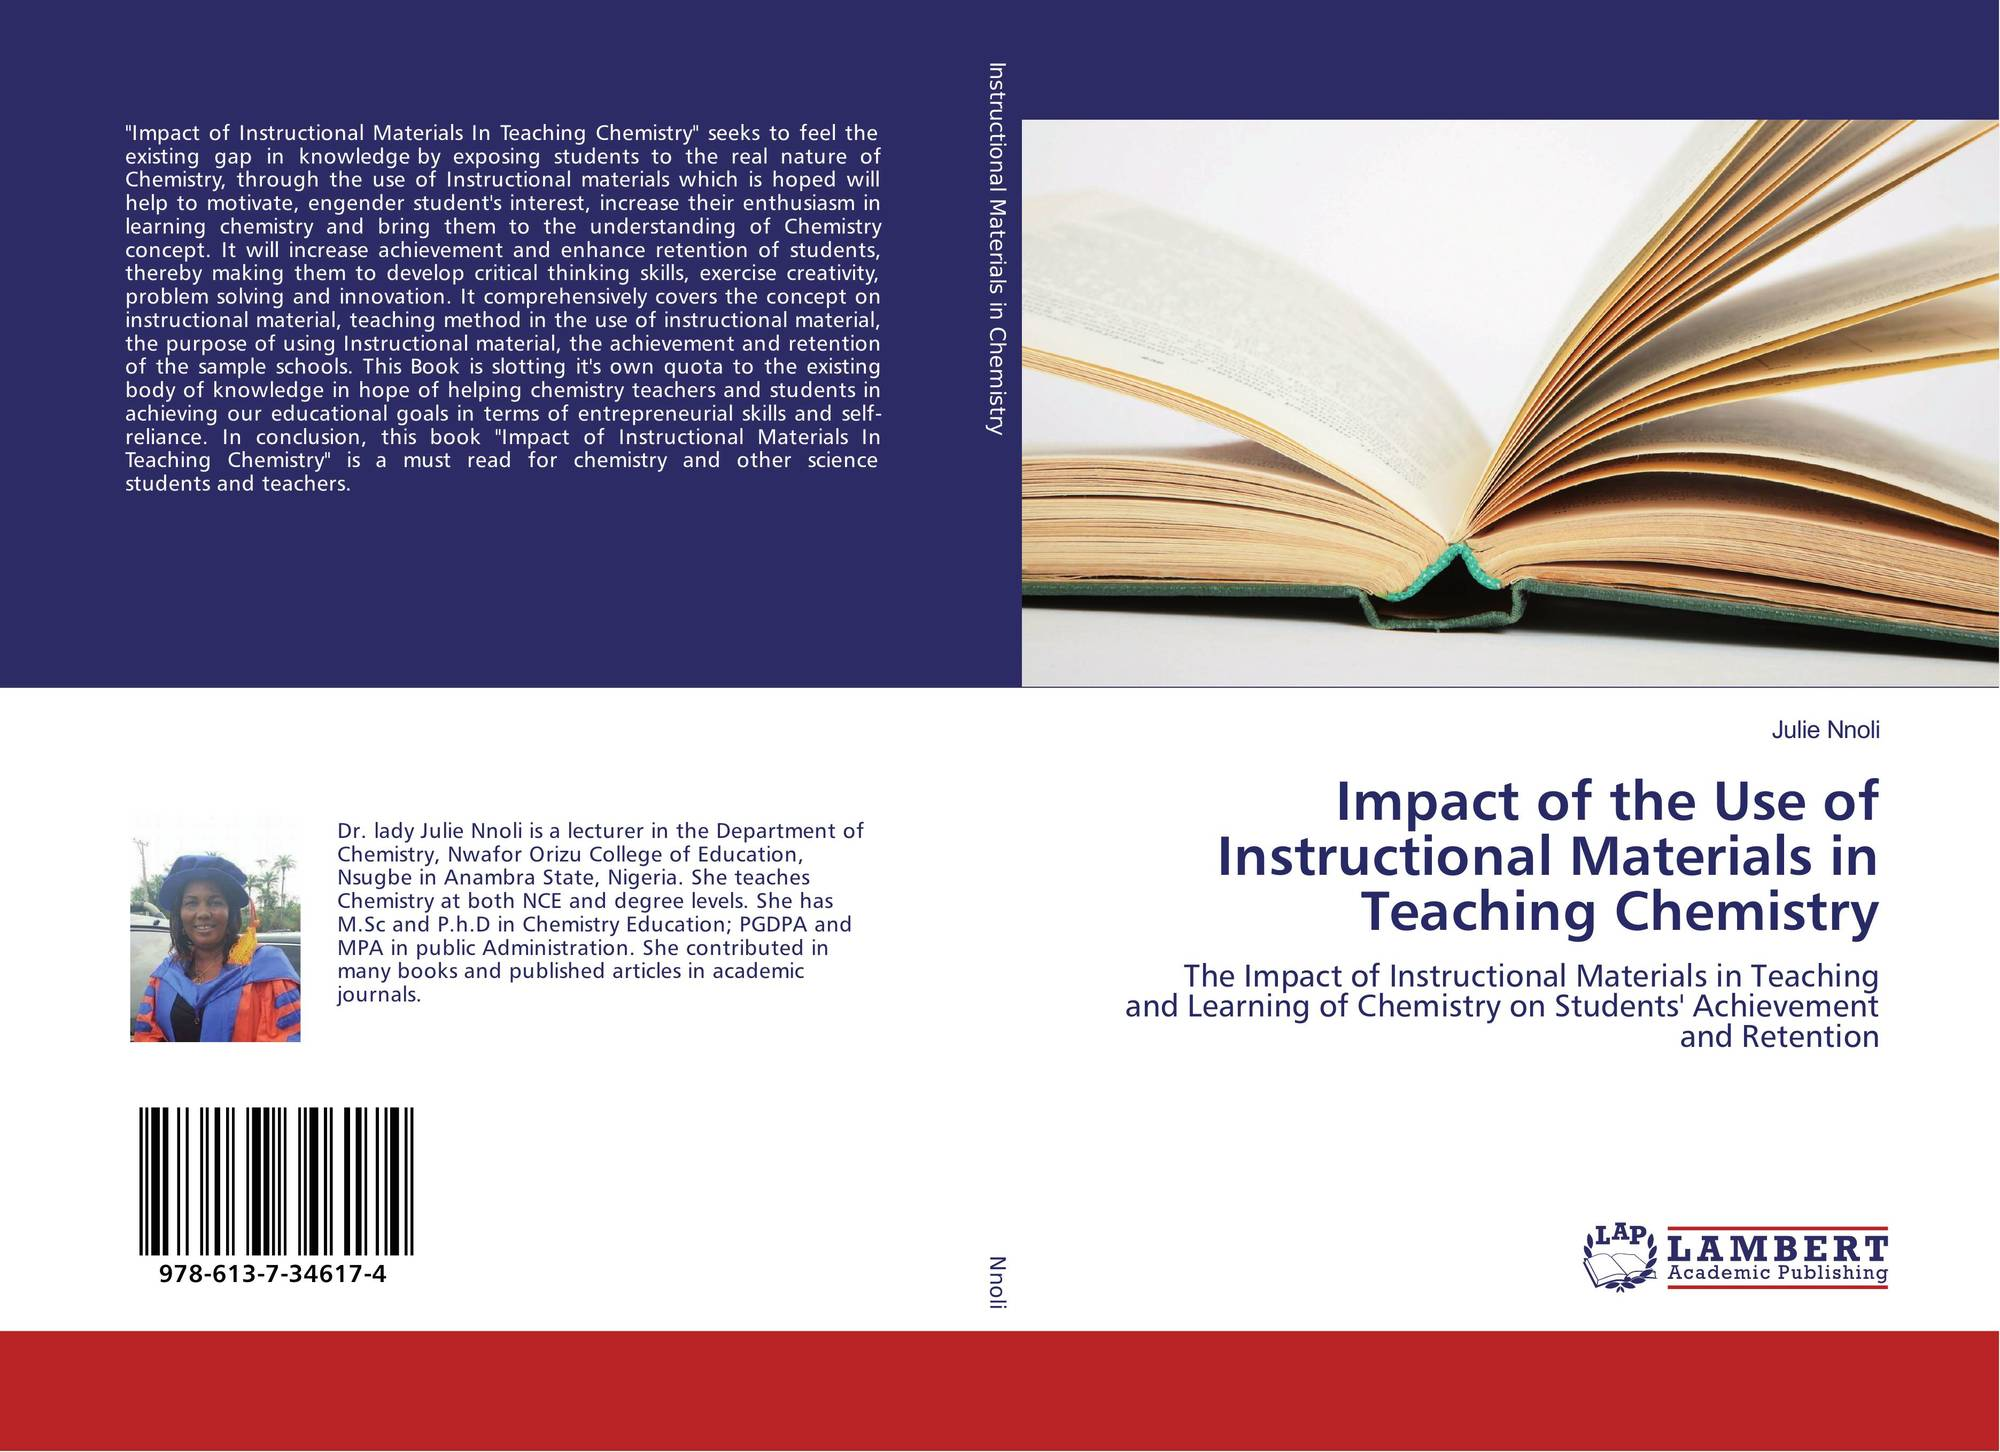 Impact Of The Use Of Instructional Materials In Teaching Chemistry